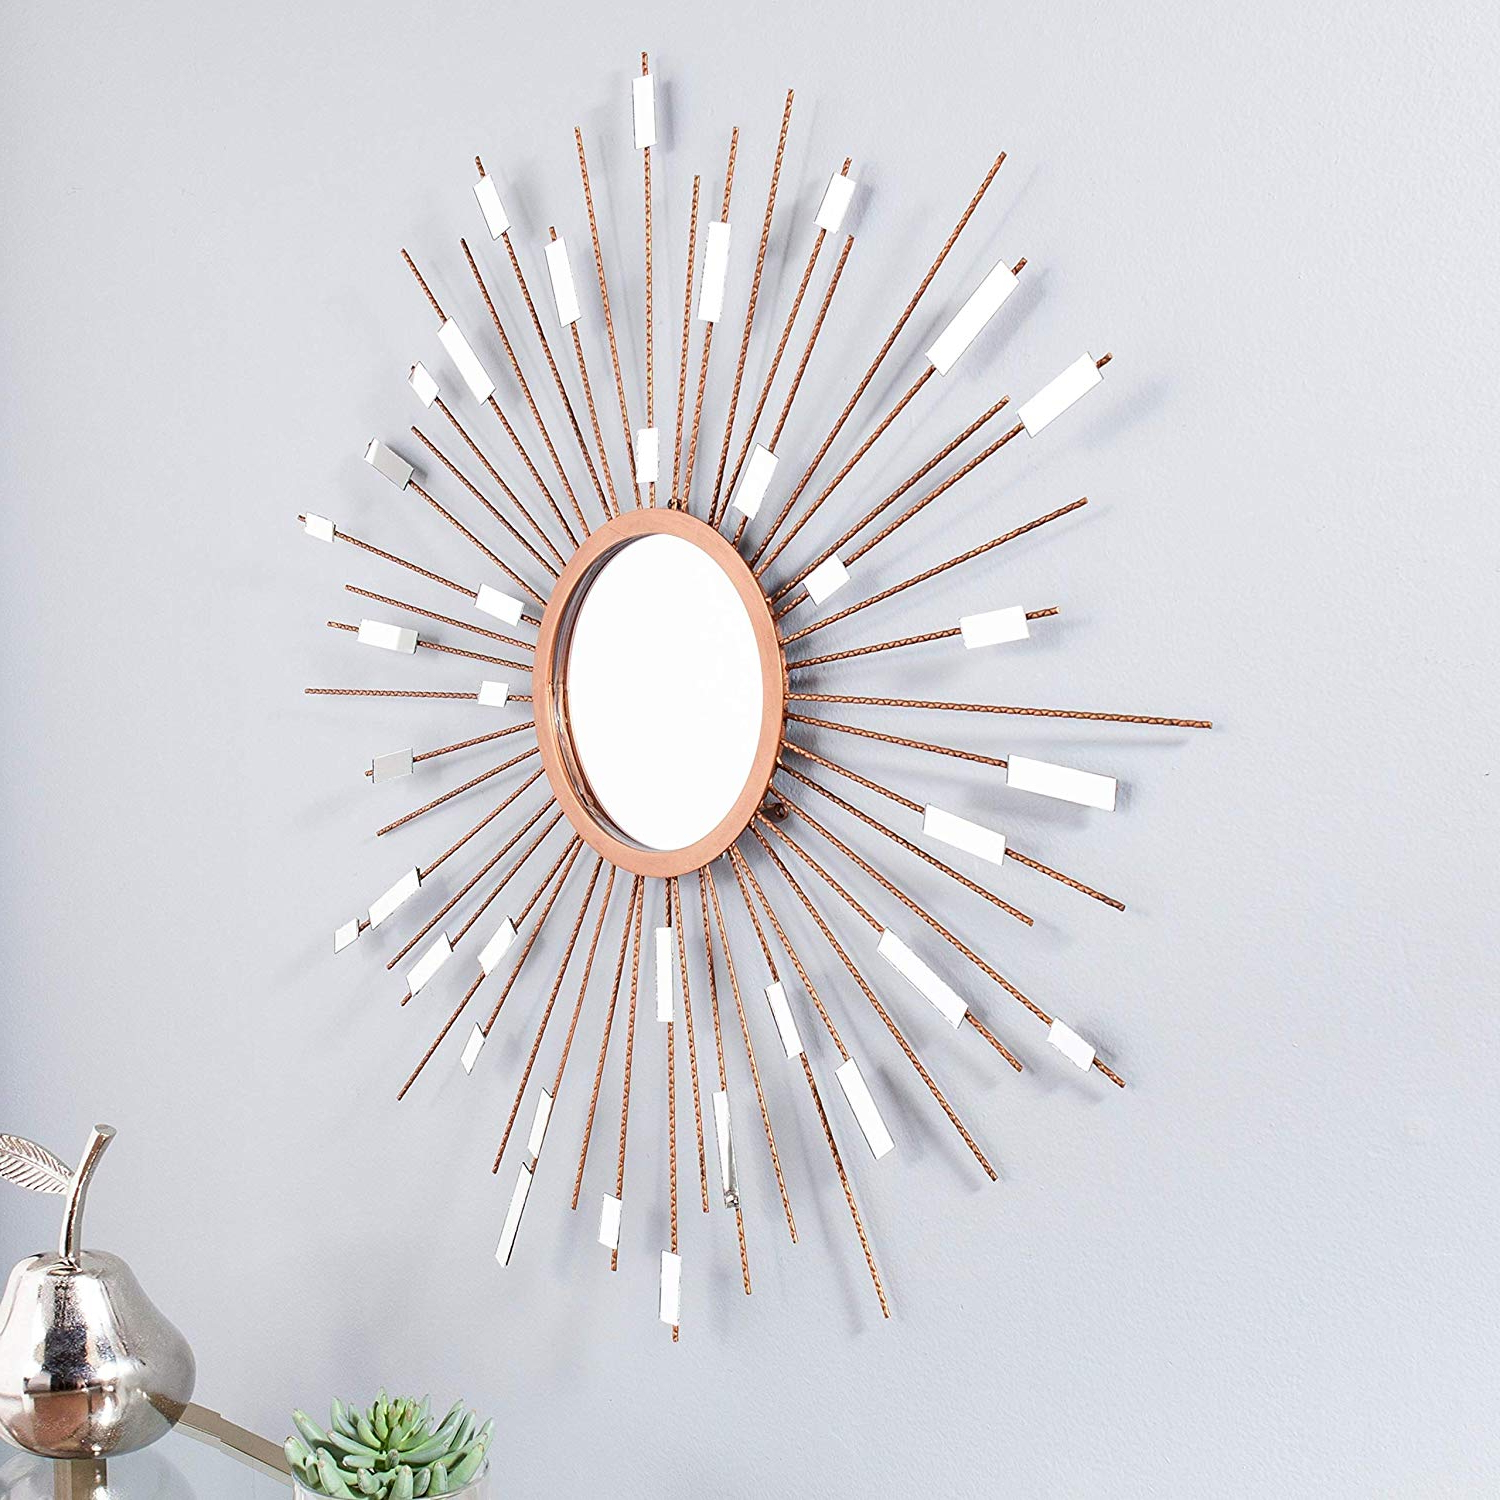 Estrela Modern Sunburst Metal Wall Mirrors In Newest Mid Century Modern Sunburst Mirrored Wall Sculpture (View 6 of 20)